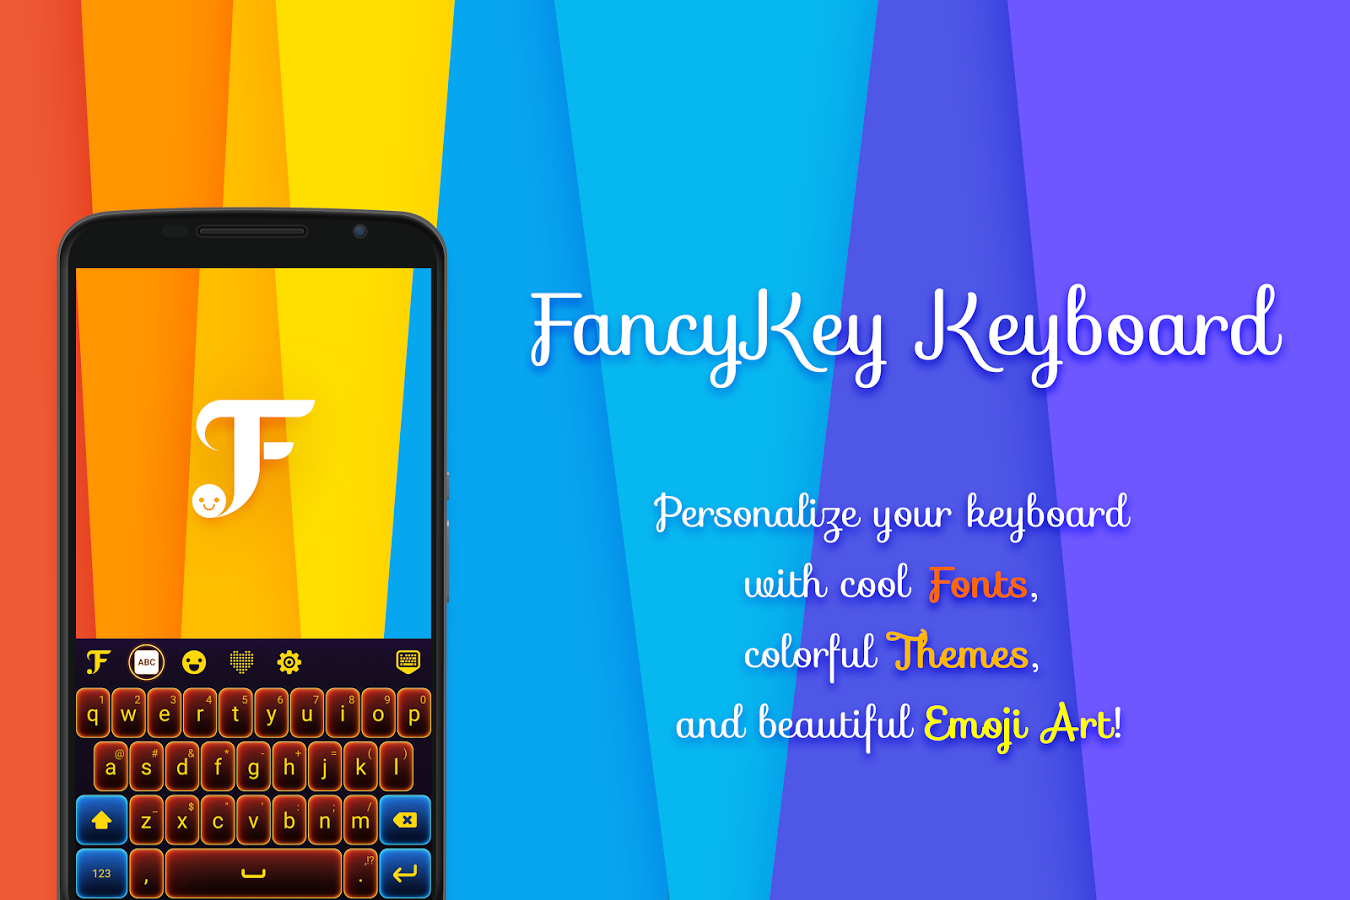 FancyKey Keyboard Cool Fonts Emoji GIF Sticker Android Apps